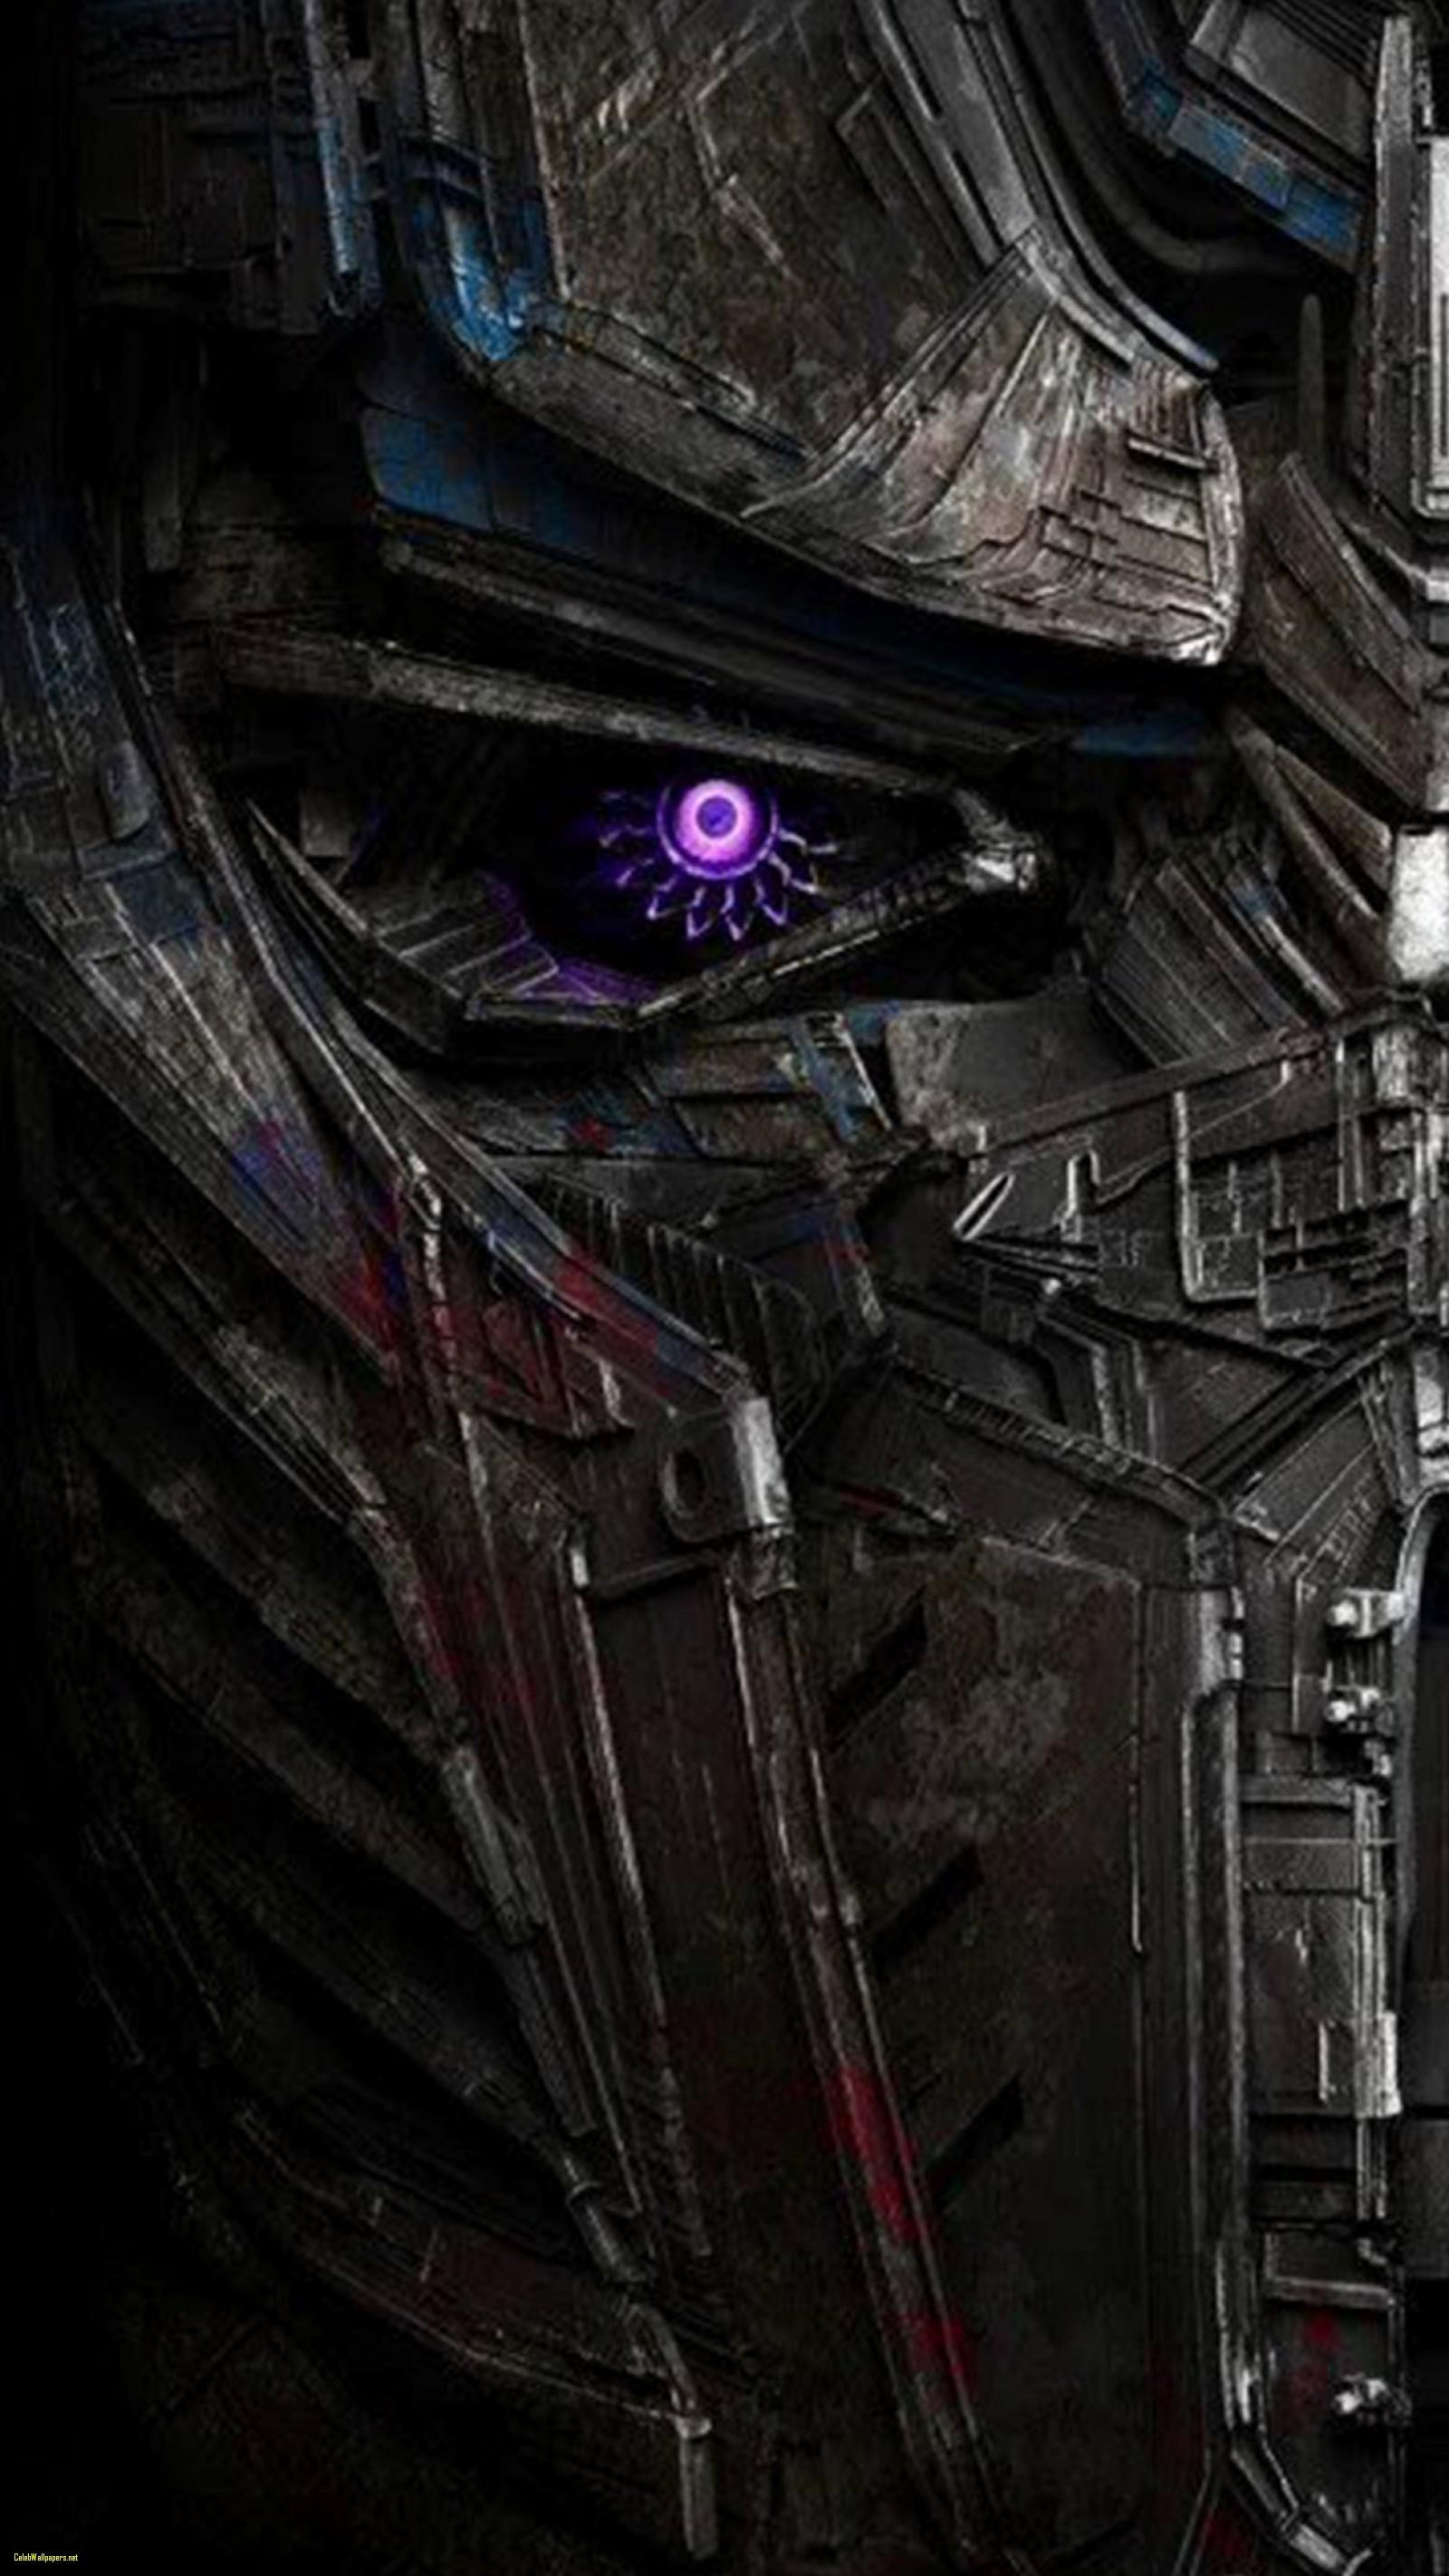 Transformers Iphone Wallpapers on